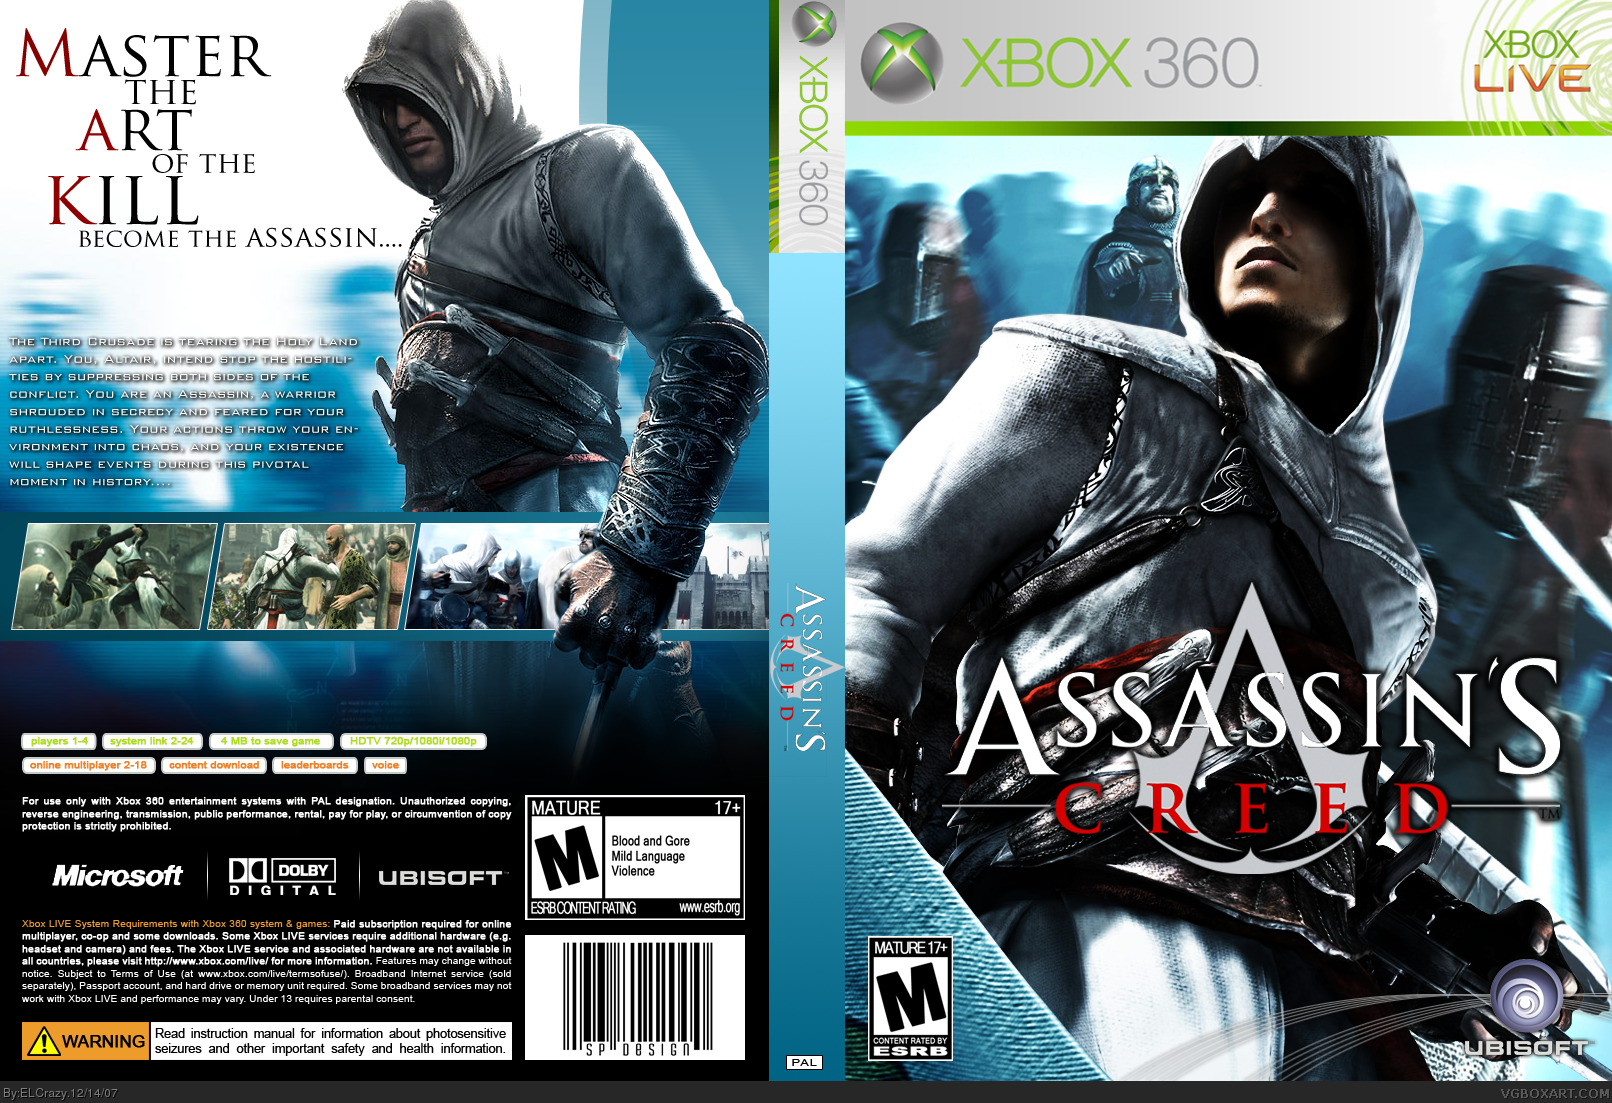 assassins creed xbox 360 box art cover by elcrazy